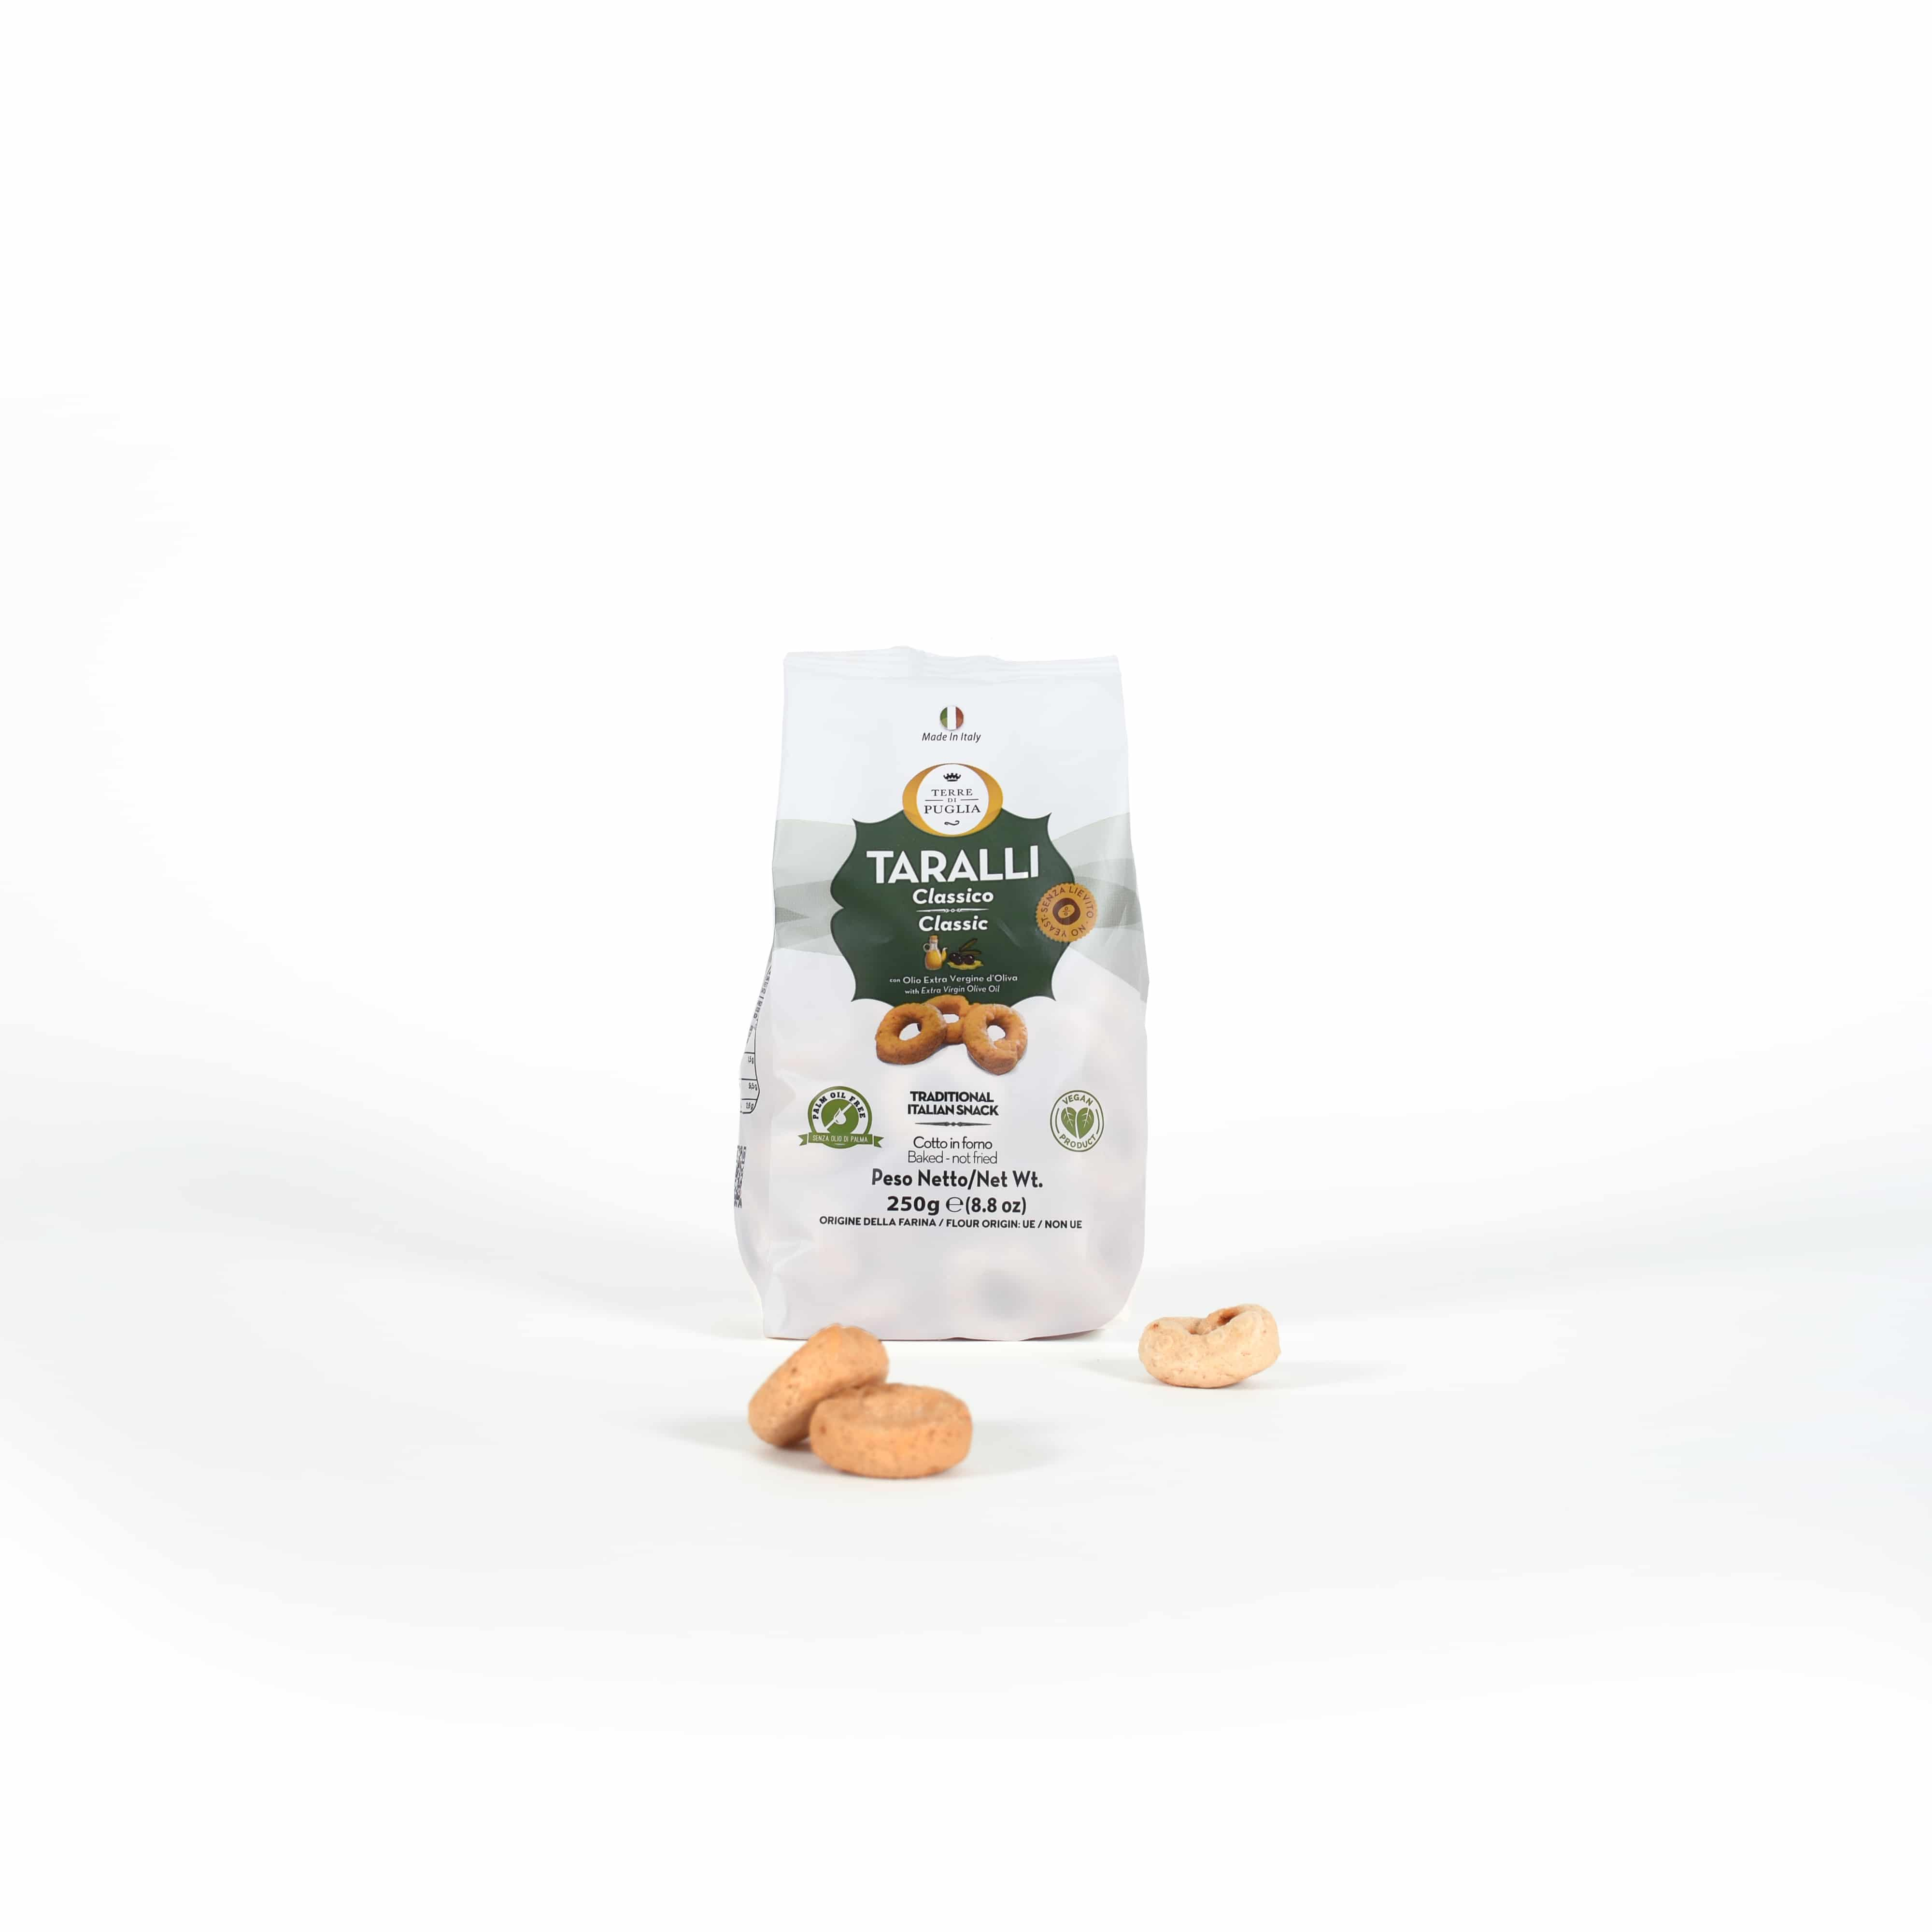 Tarallini crackers with extra virgin olive oil